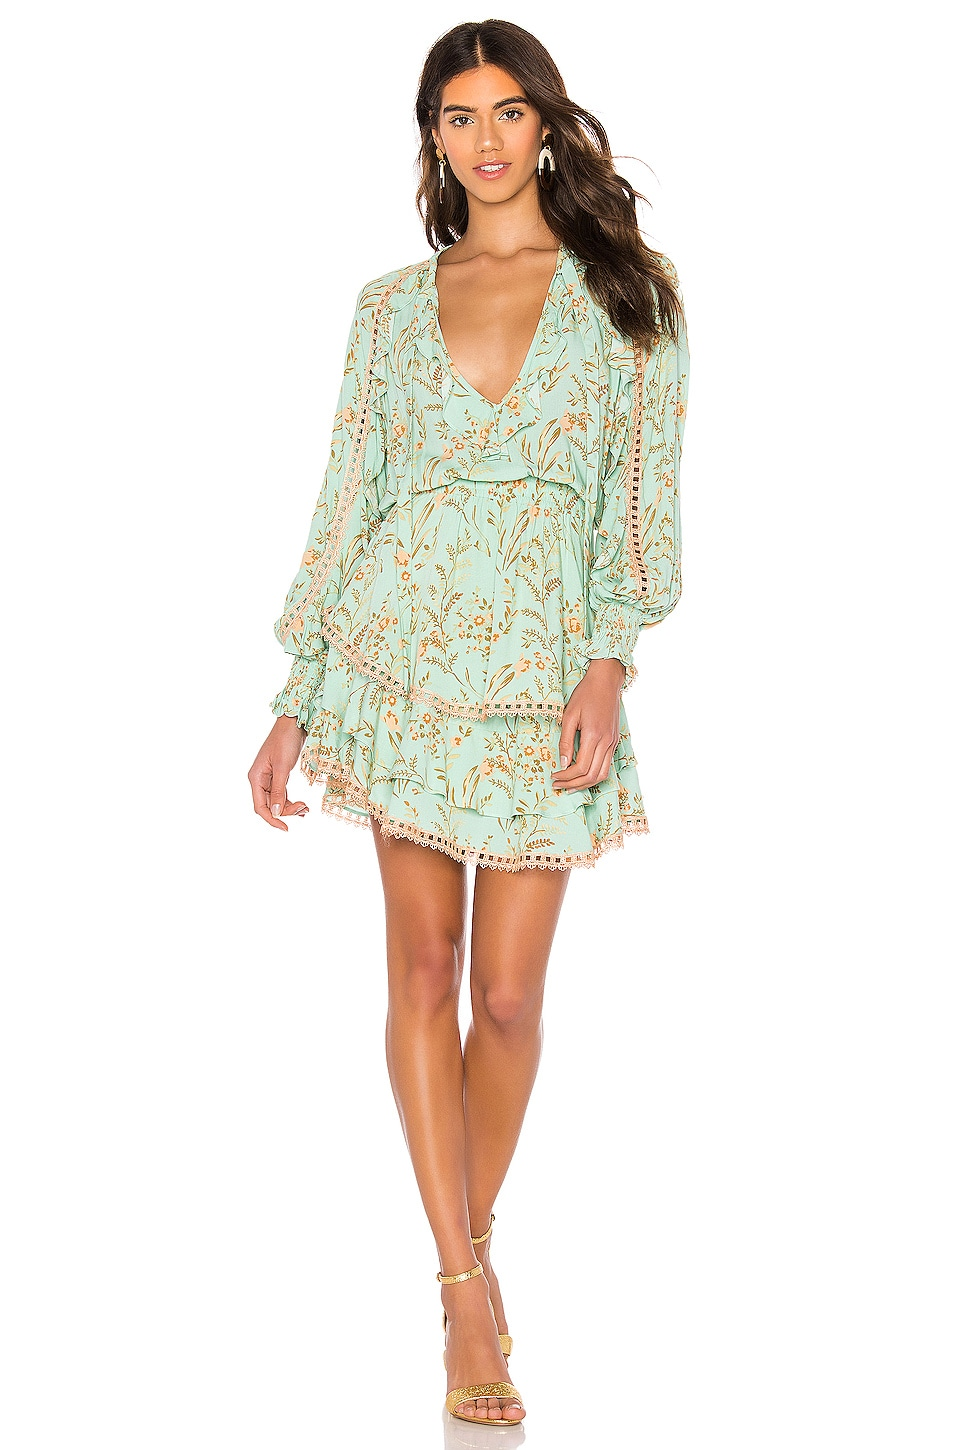 Spell & The Gypsy Collective Maisie Playdress in Vintage Turquoise